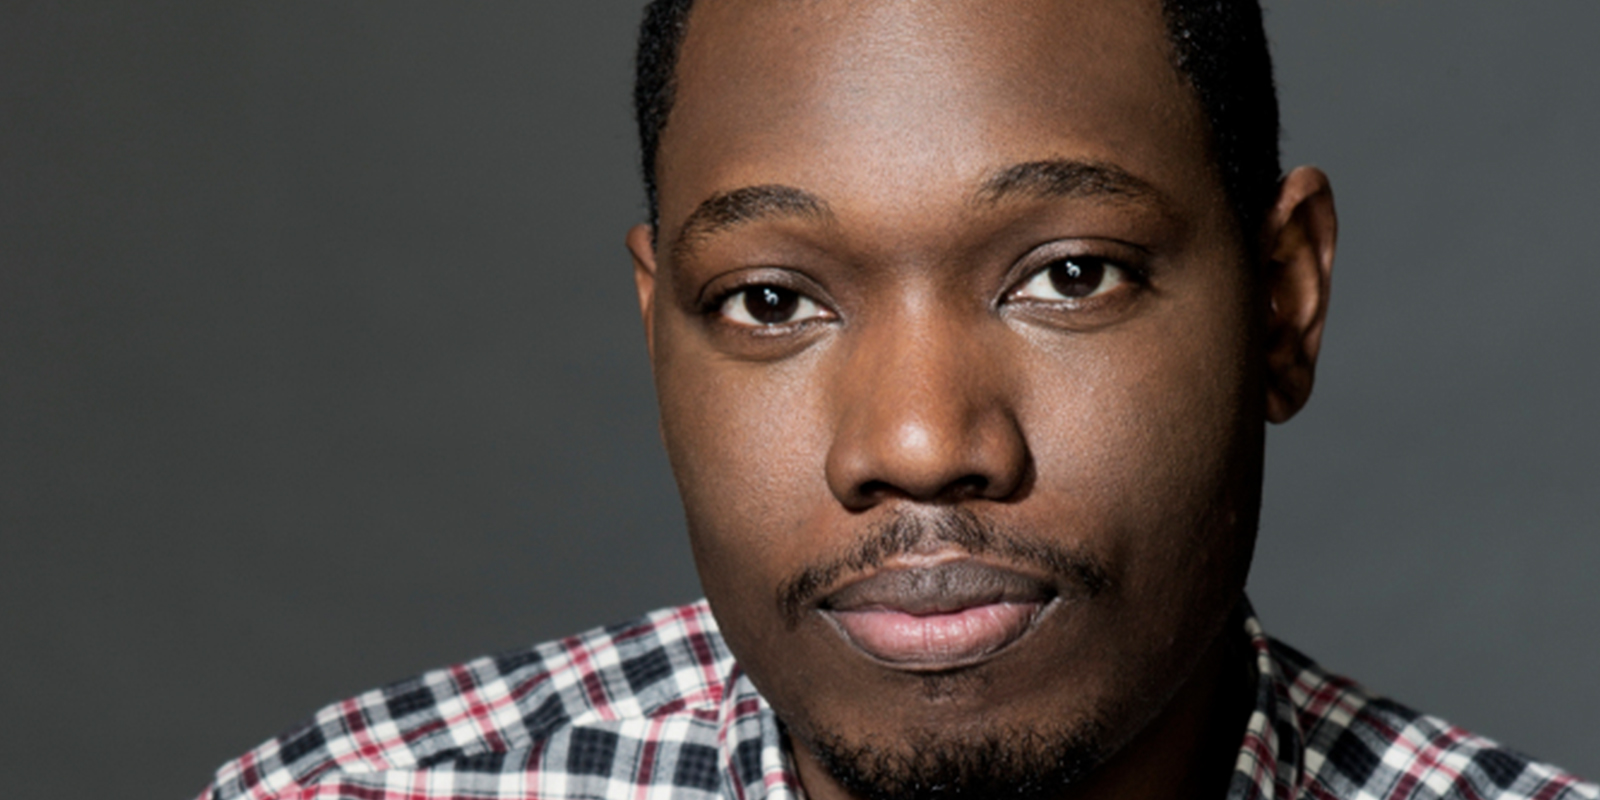 Hbo Max Orders New Six Episode Series Starring Michael Che Blackfilm Com Black Movies Television And Theatre News